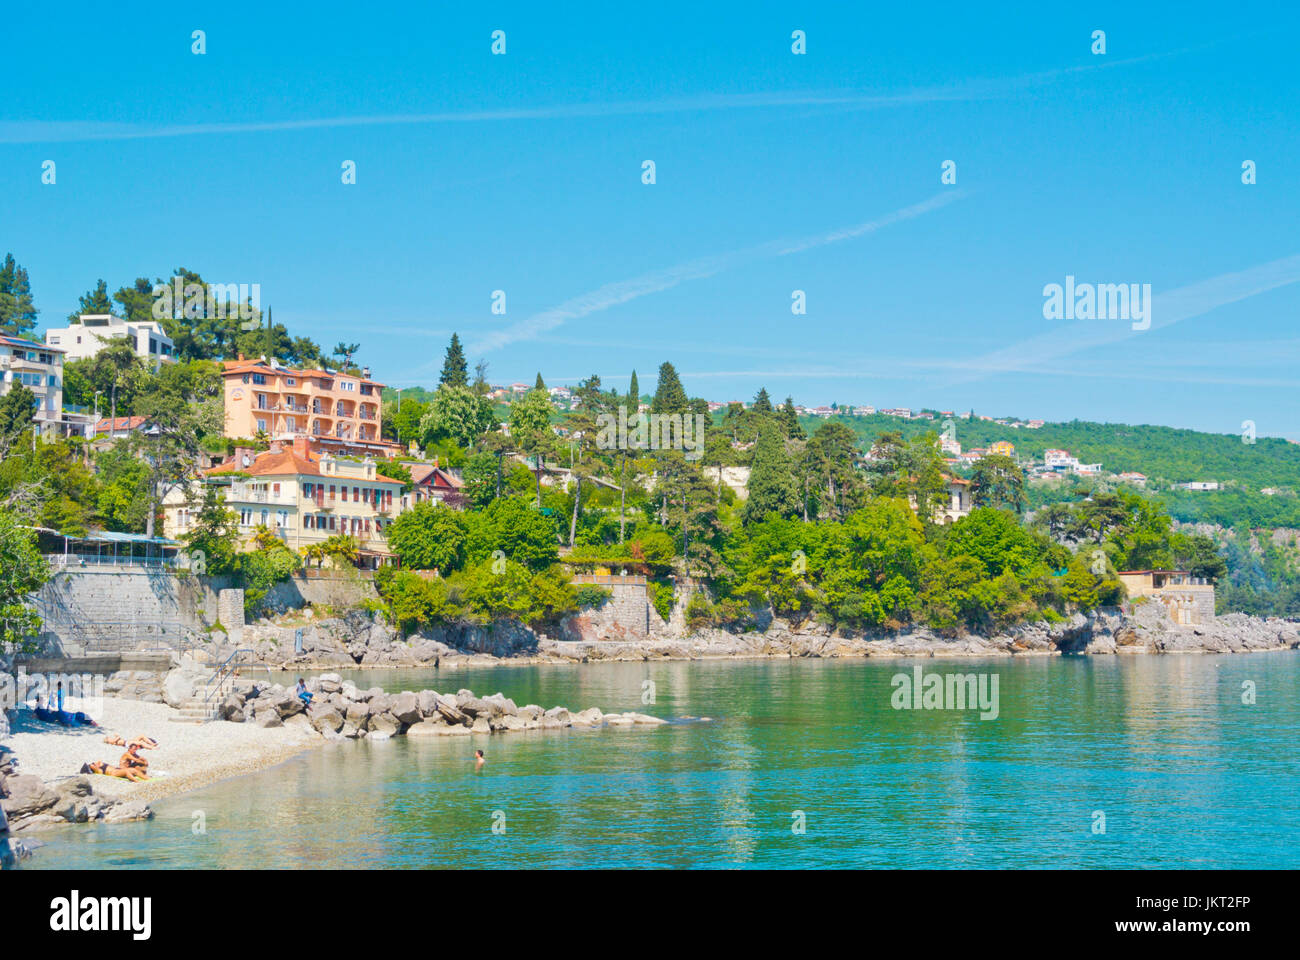 Plaza Crnikovica, beach, Volosko, a district of Opatija, Kvarner Bay, Croatia - Stock Image